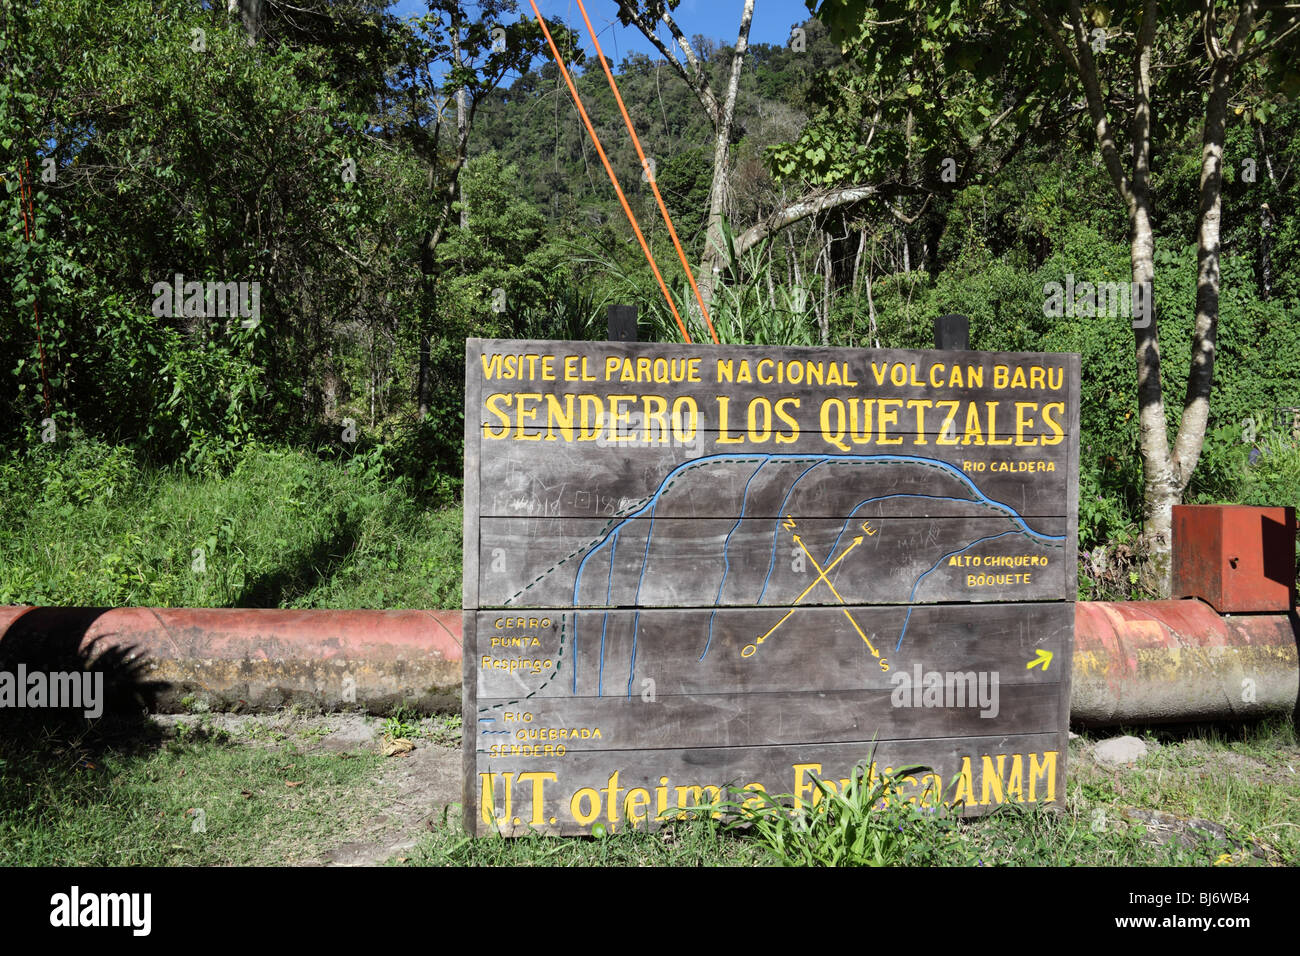 ANAM sign at start of Quetzal Trail, Volcan Baru National Park, near Boquete, Chiriqui, Panama - Stock Image